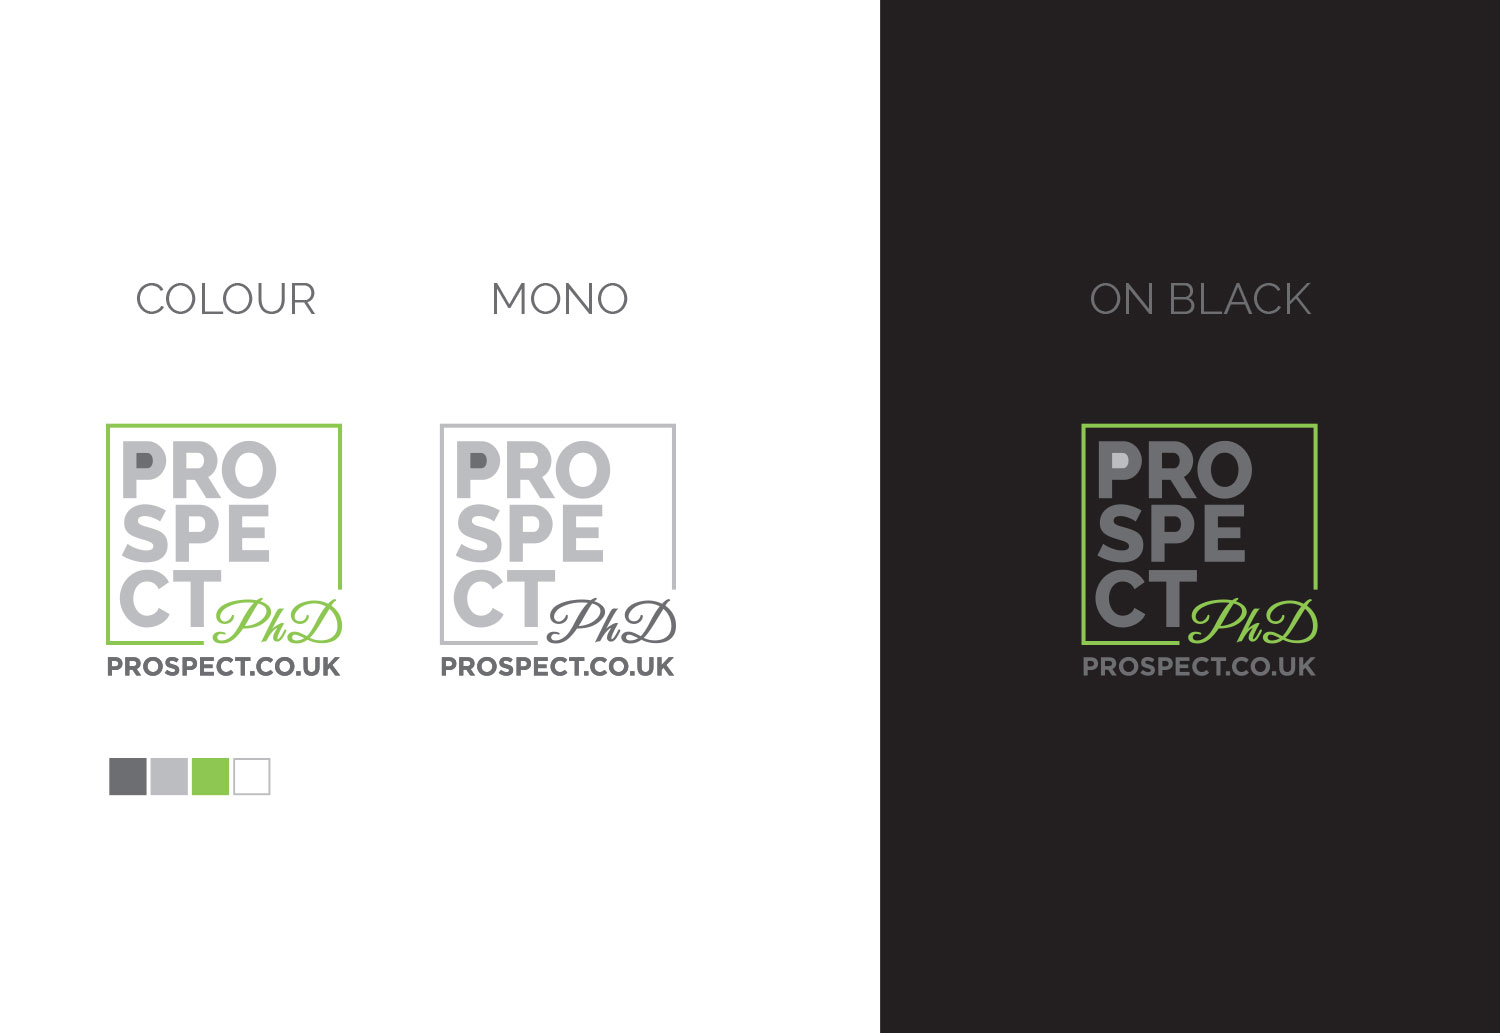 Final logo concepts for the Prospect PHD (Prospect Homes of Distinction) brand